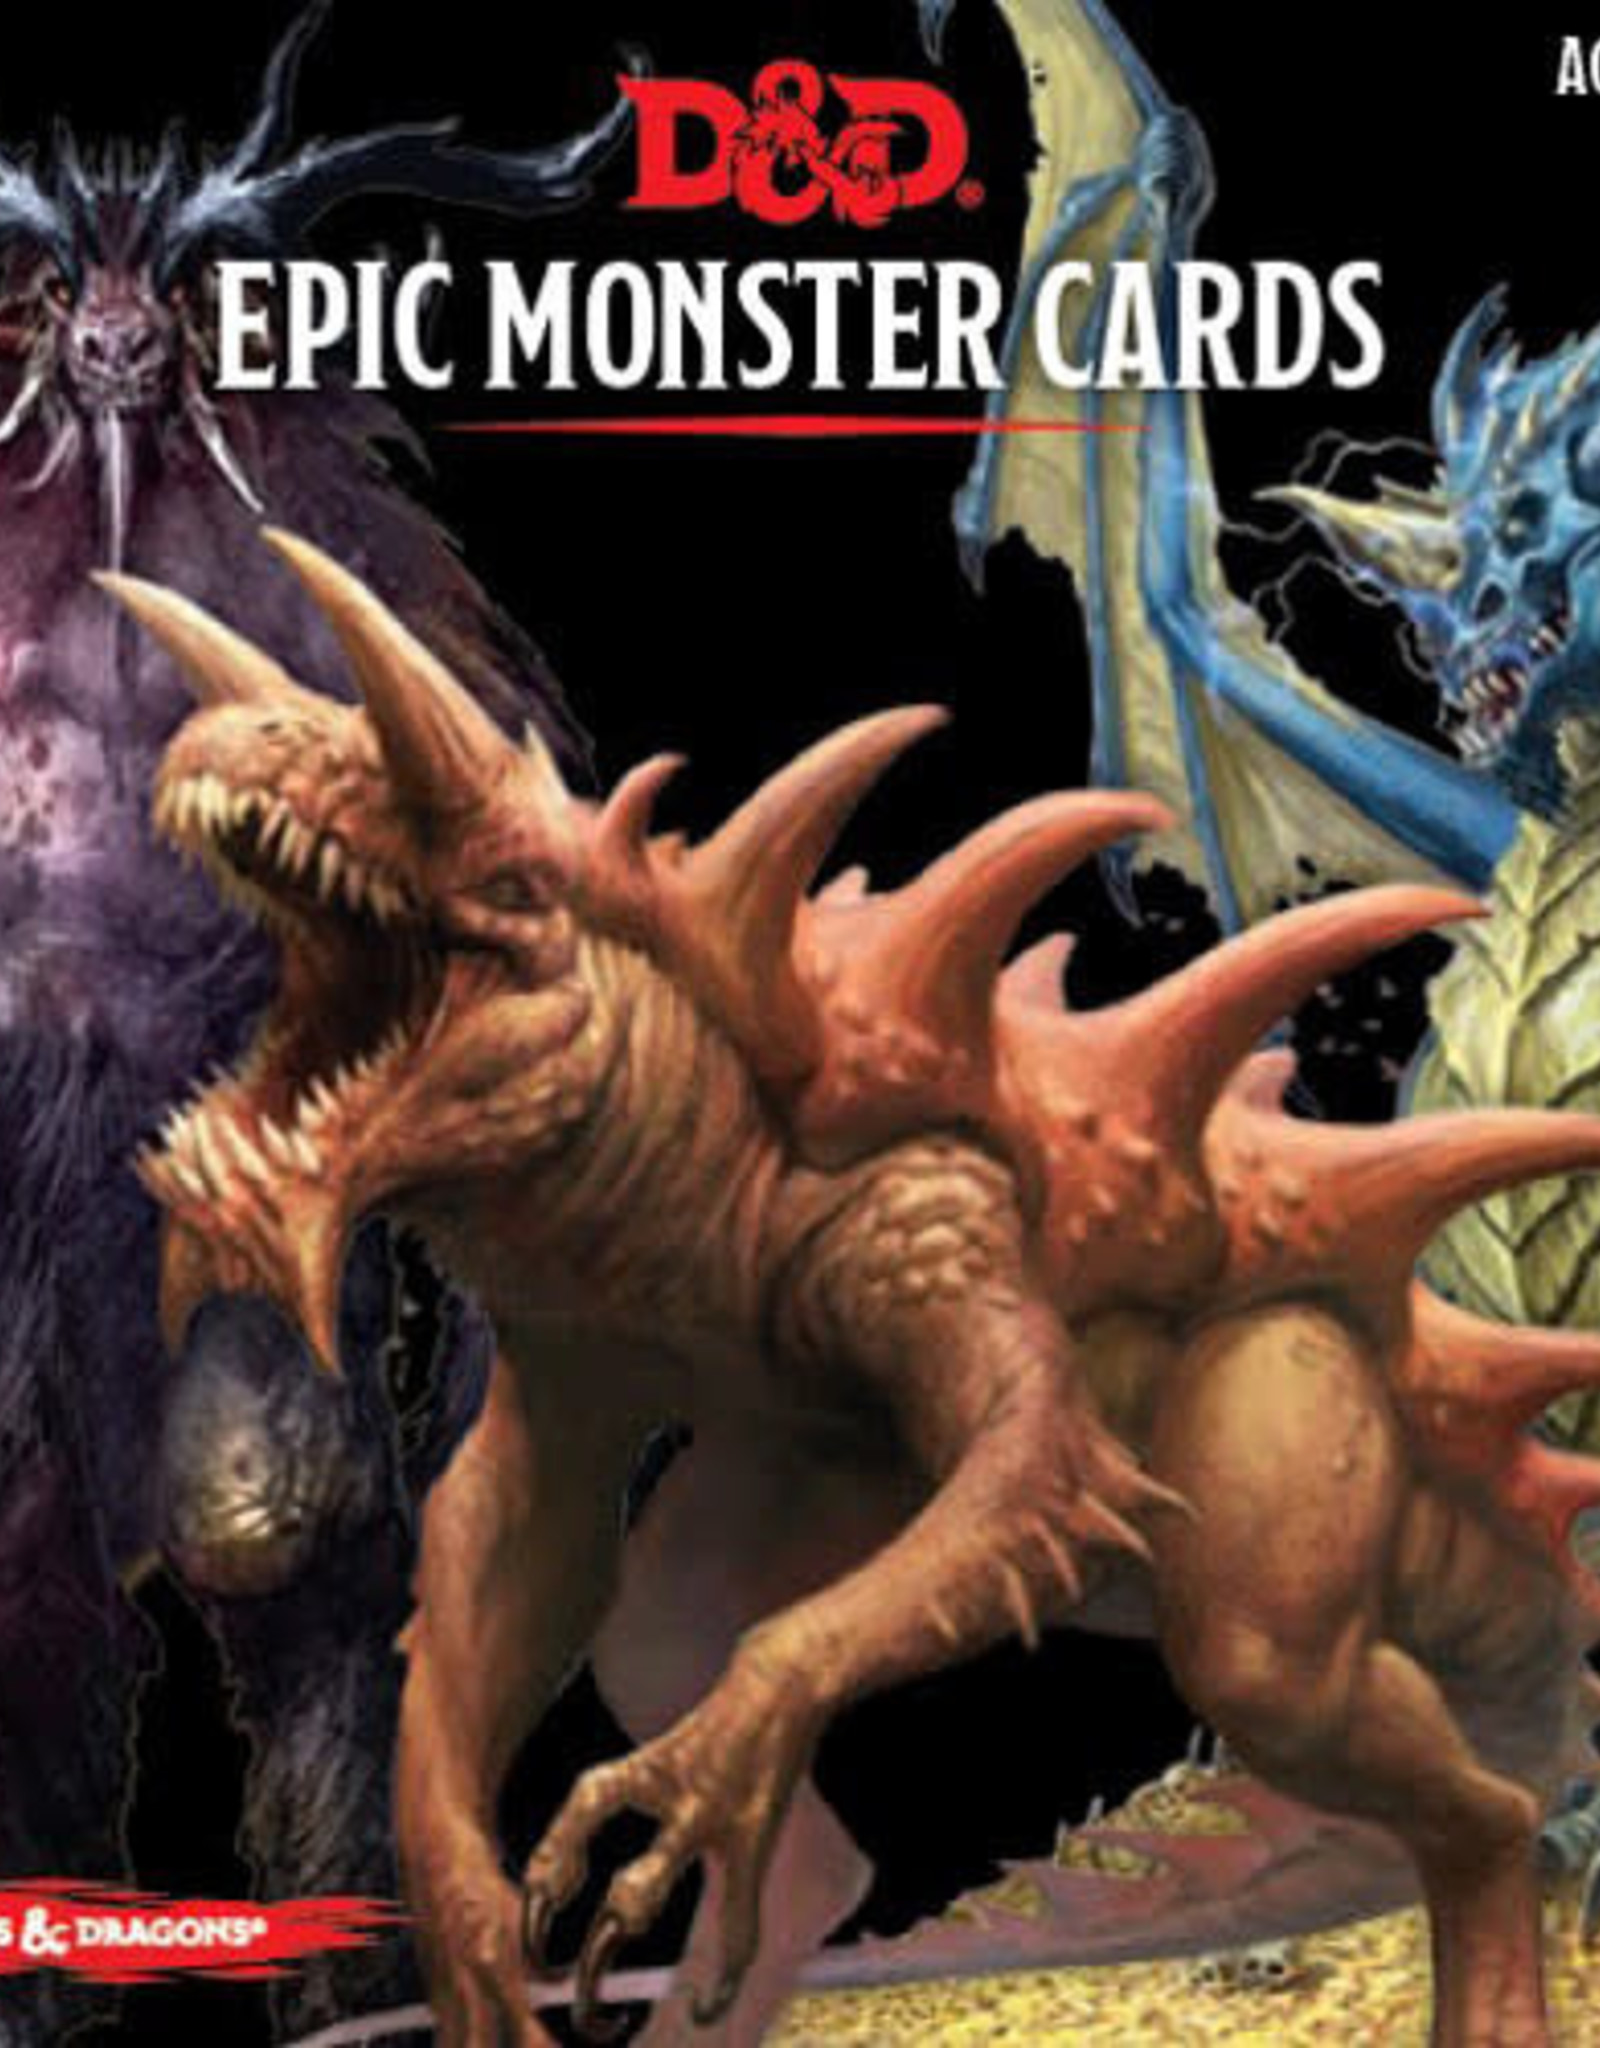 Wizards of the Coast Dungeons & Dragons Epic Monster Cards